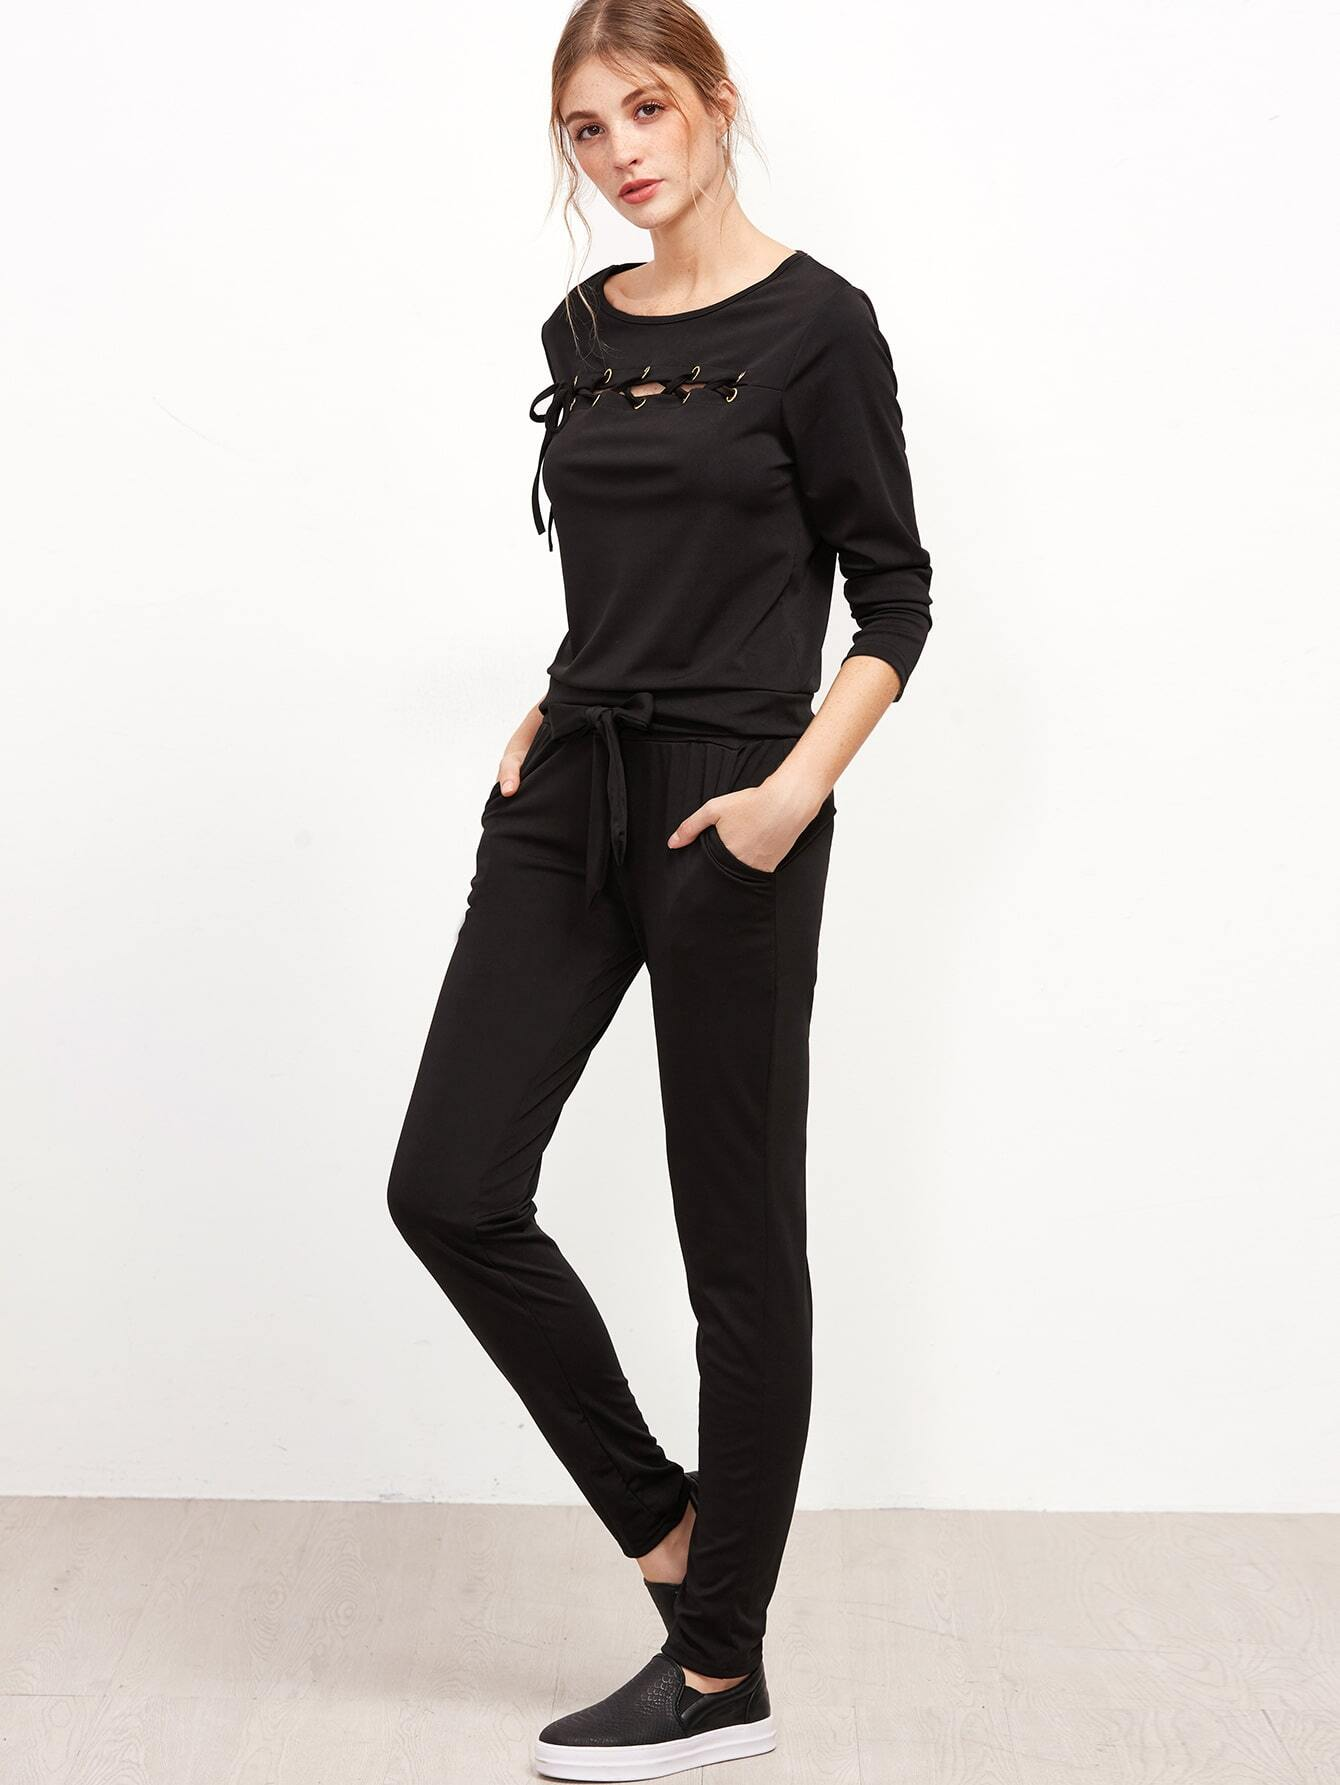 Black Eyelet Lace Up Trim Sweatshirt With Pants twopiece160927302